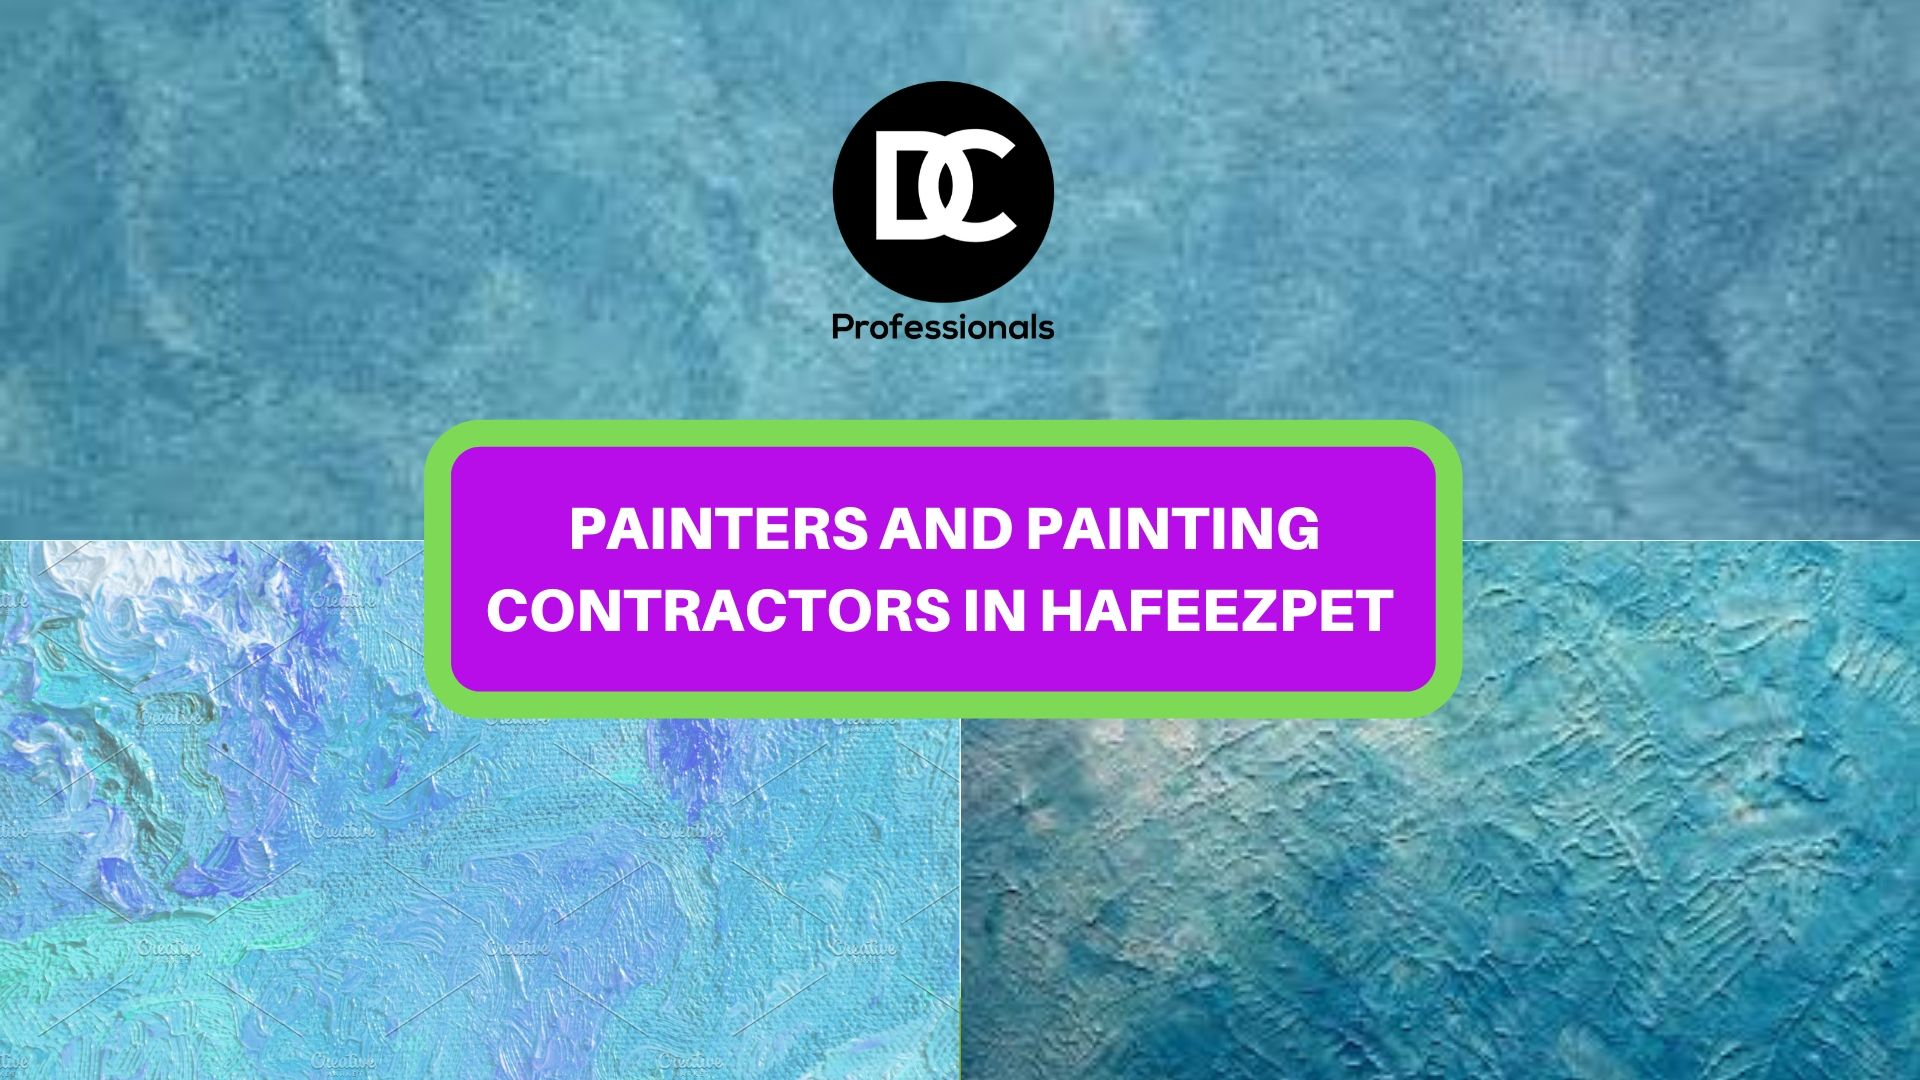 Painters and Painting Contractors in Hafeezpet